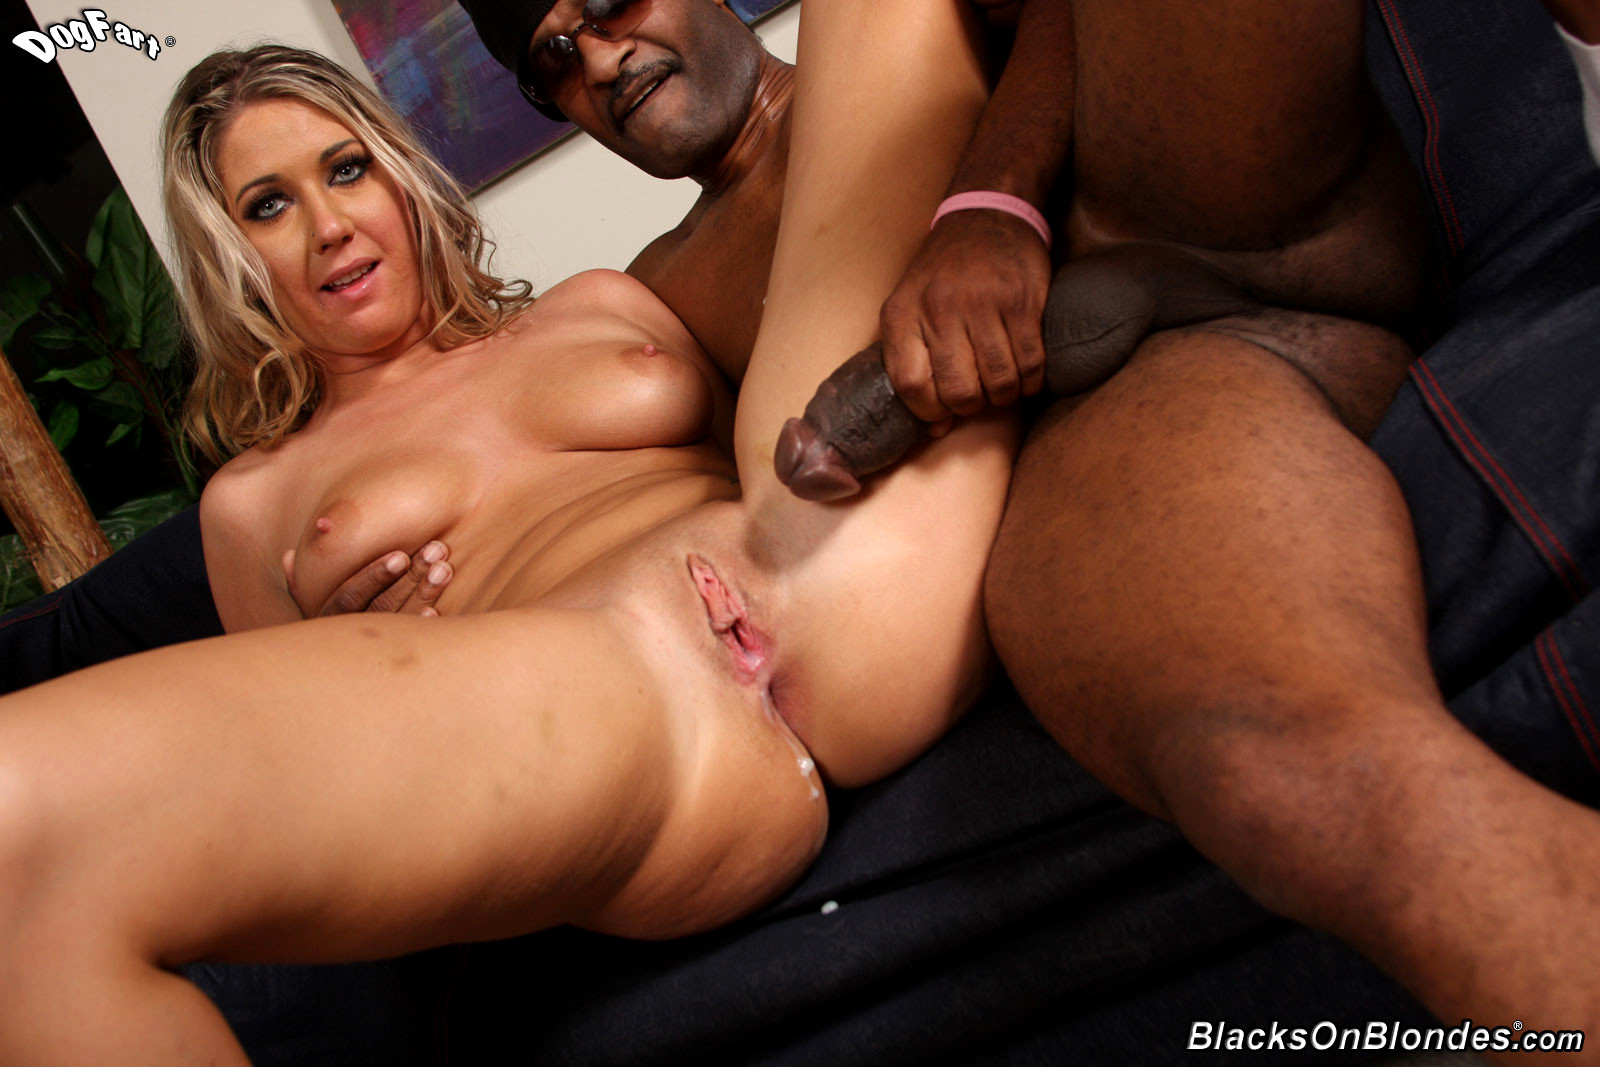 Young boy handjob by girl